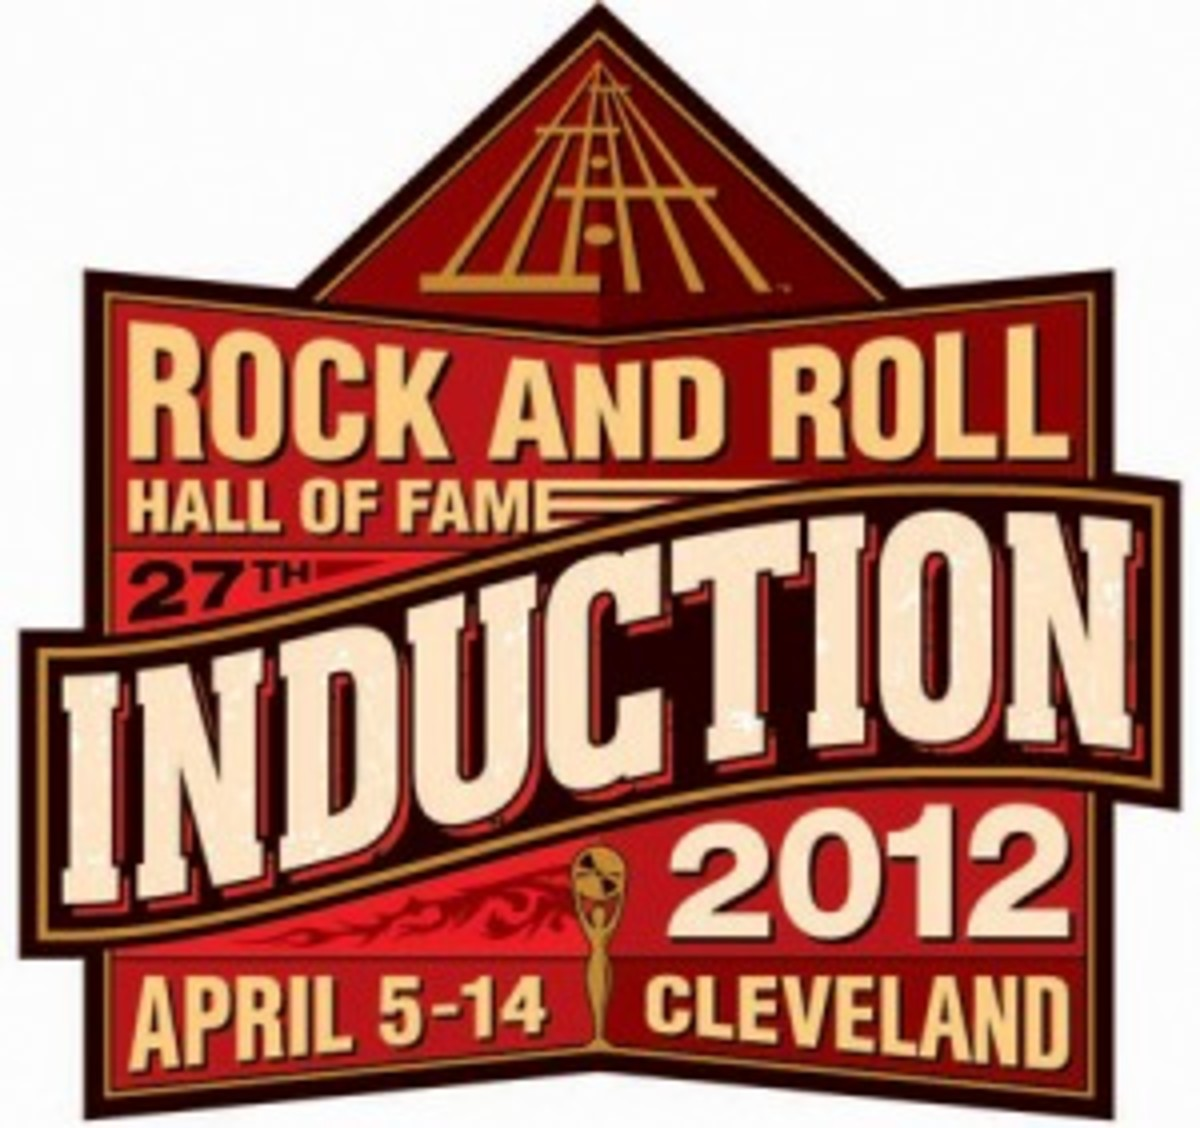 Rock And Roll Hall of Fame Induction 2012